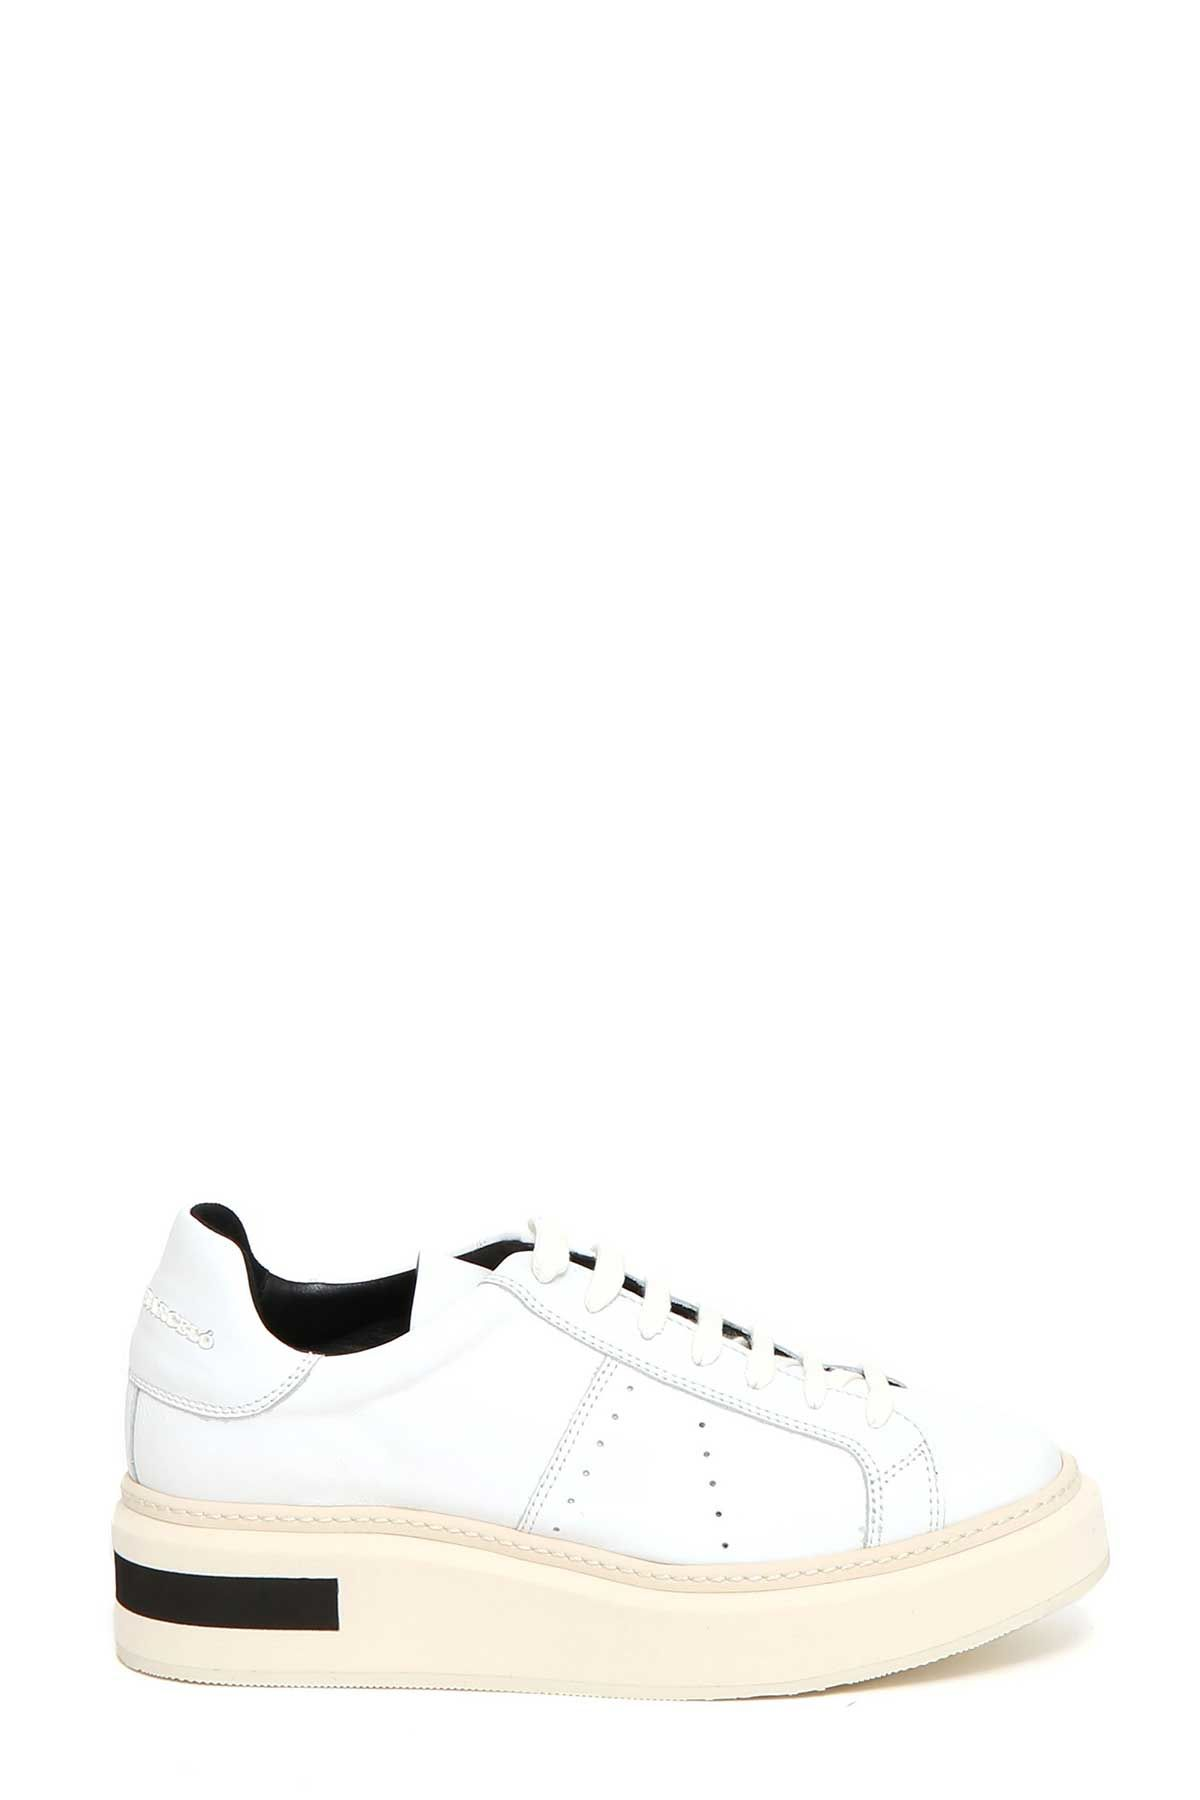 Manuel Barcelò Leather Lacing Sneaker